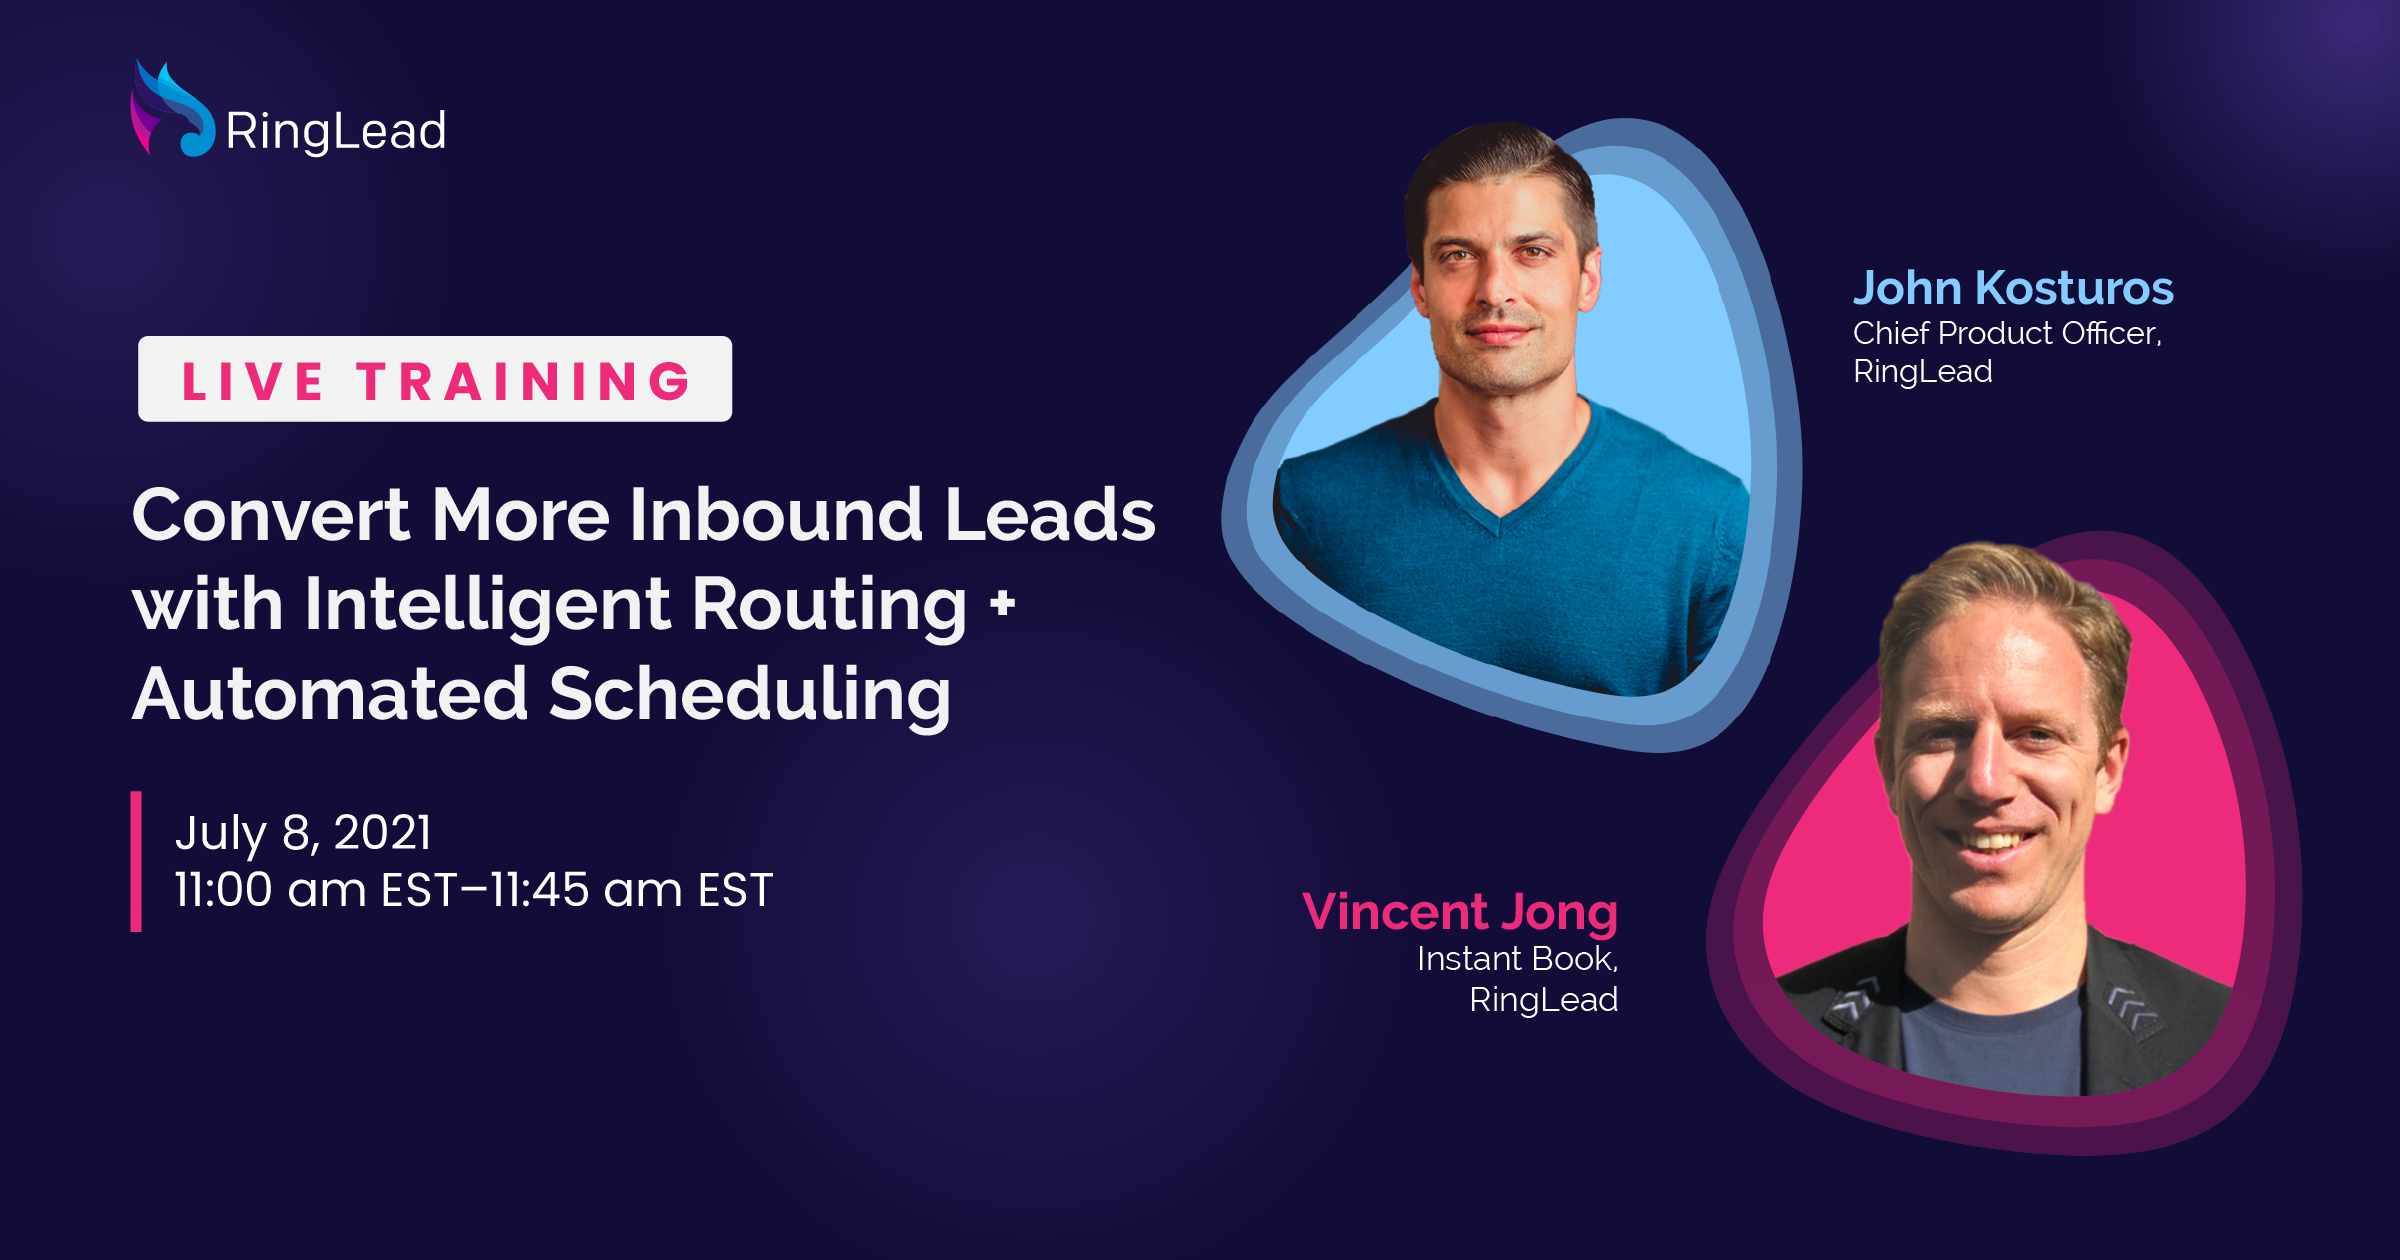 Convert More Inbound Leads with Intelligent Routing + Automated Scheduling